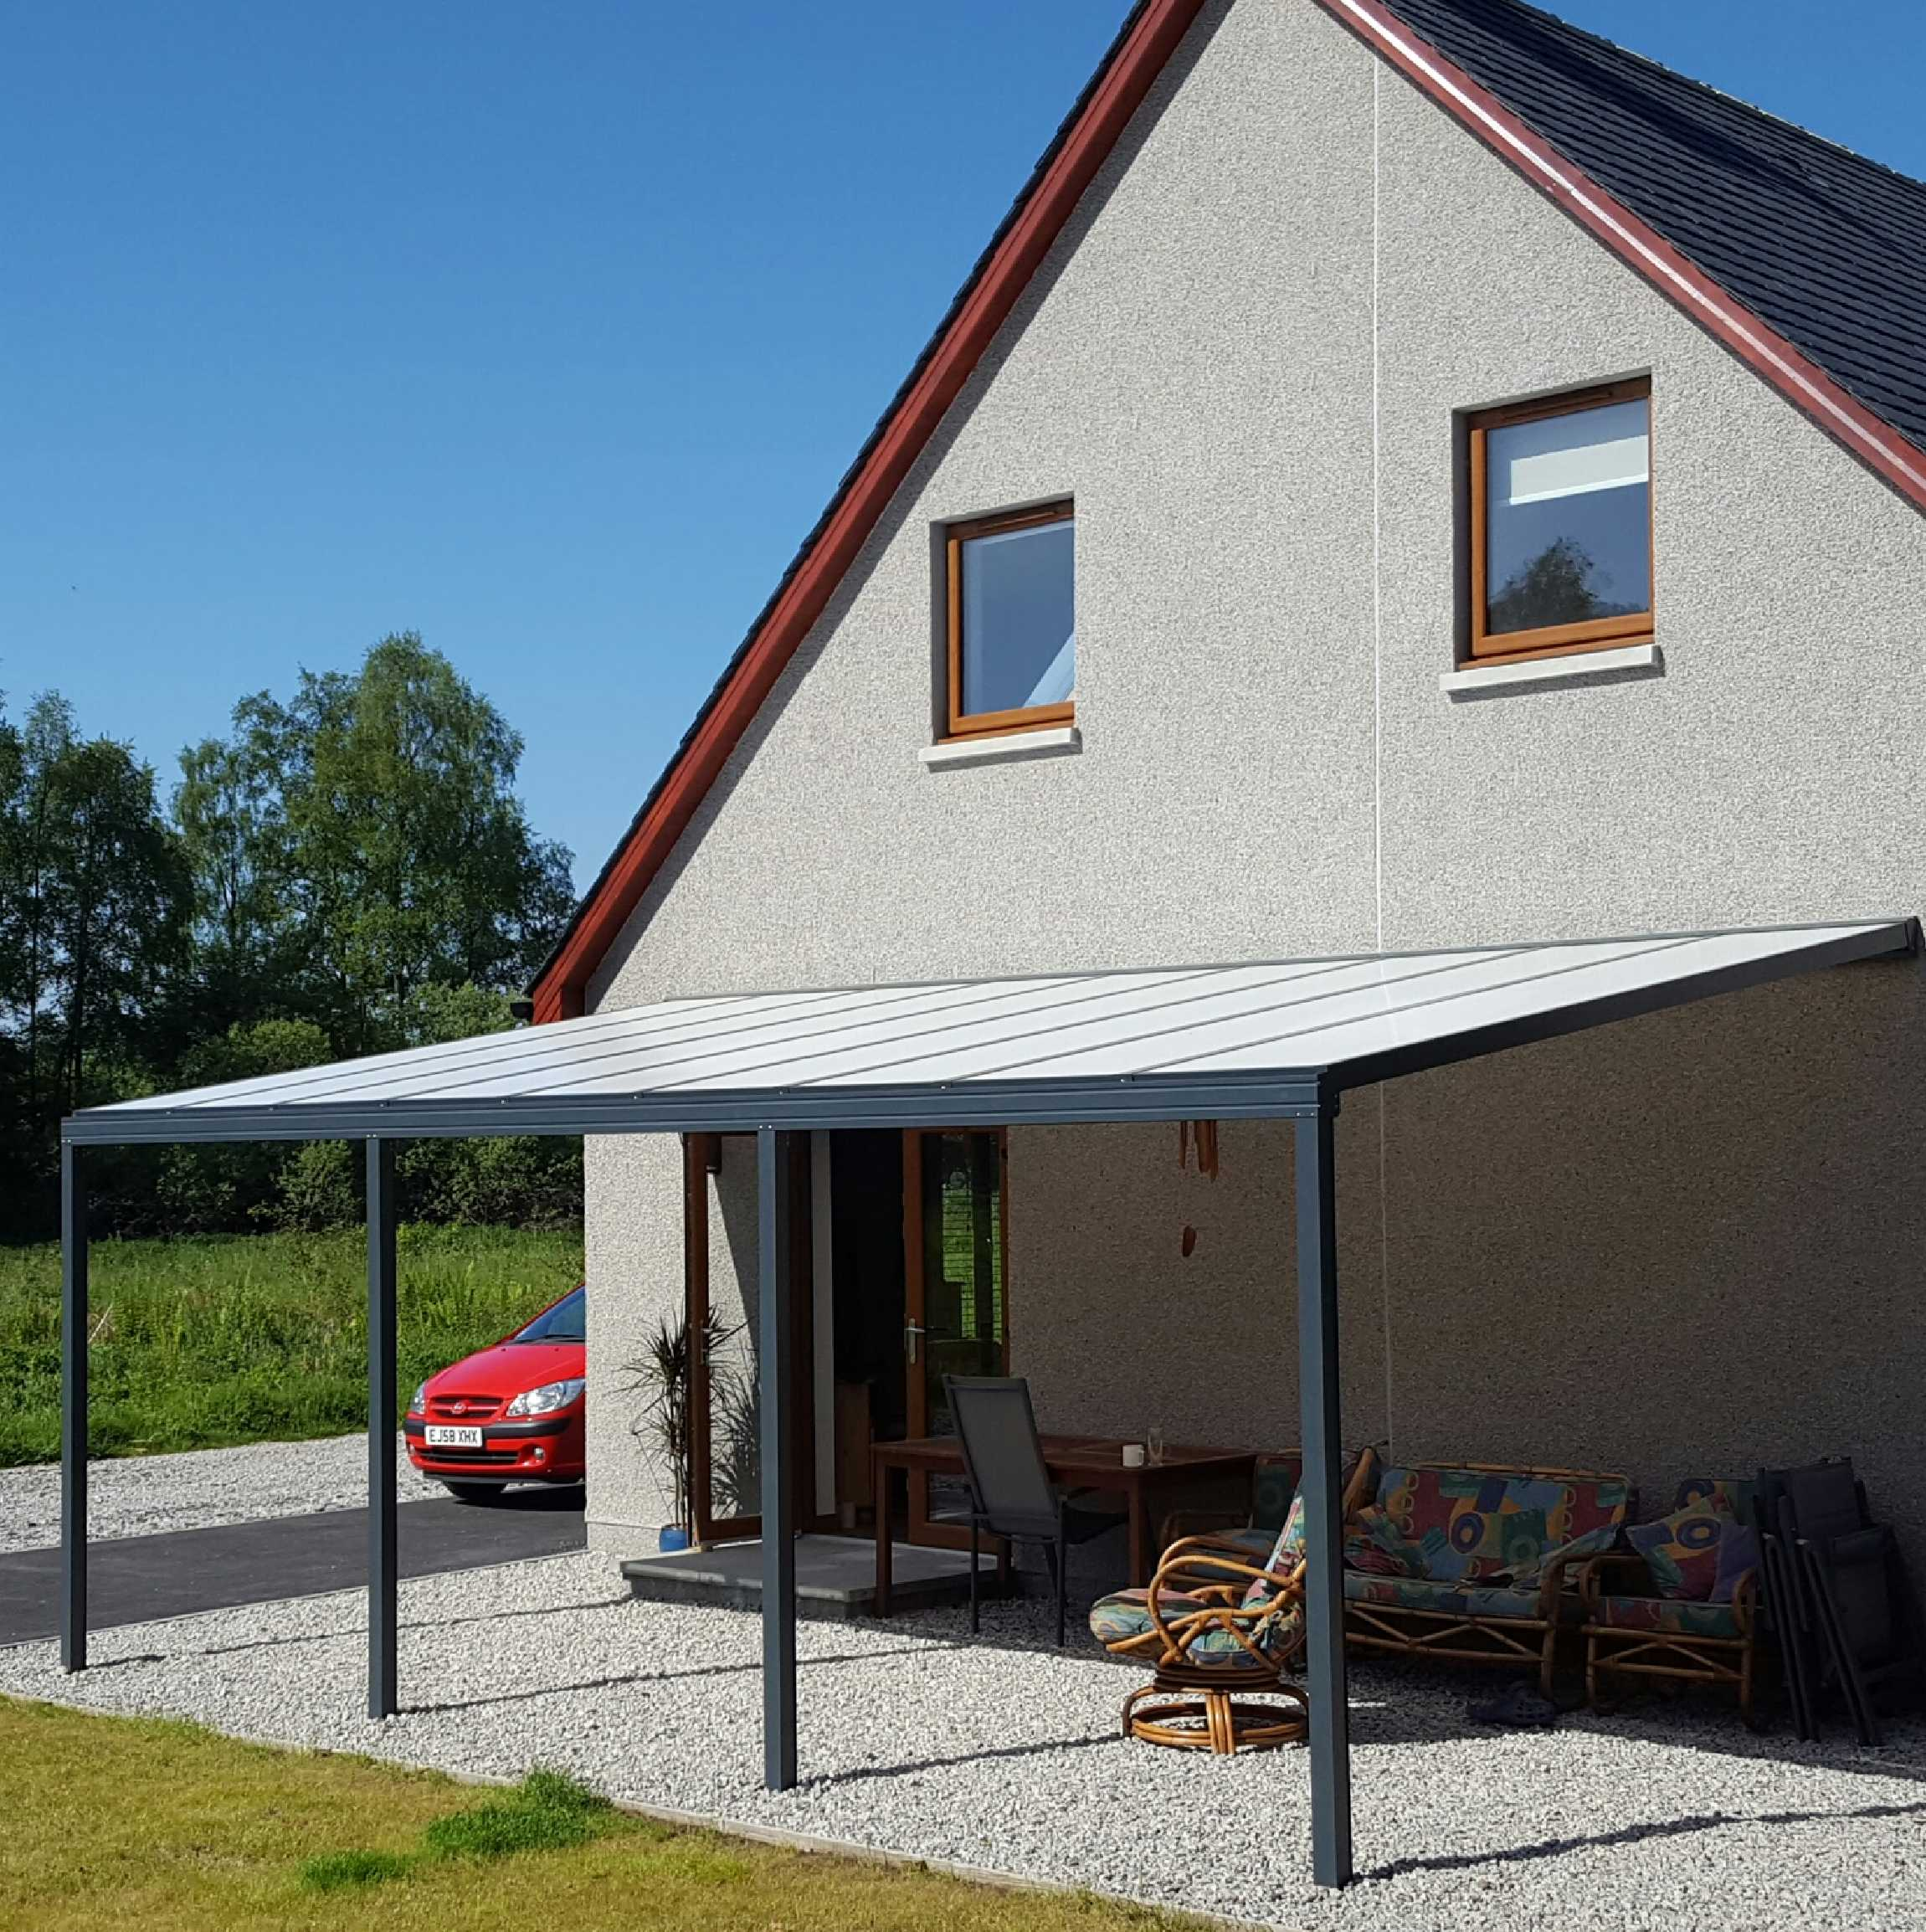 Great selection of Omega Smart Lean-To Canopy, Anthracite Grey, 16mm Polycarbonate Glazing - 7.4m (W) x 3.0m (P), (4) Supporting Posts